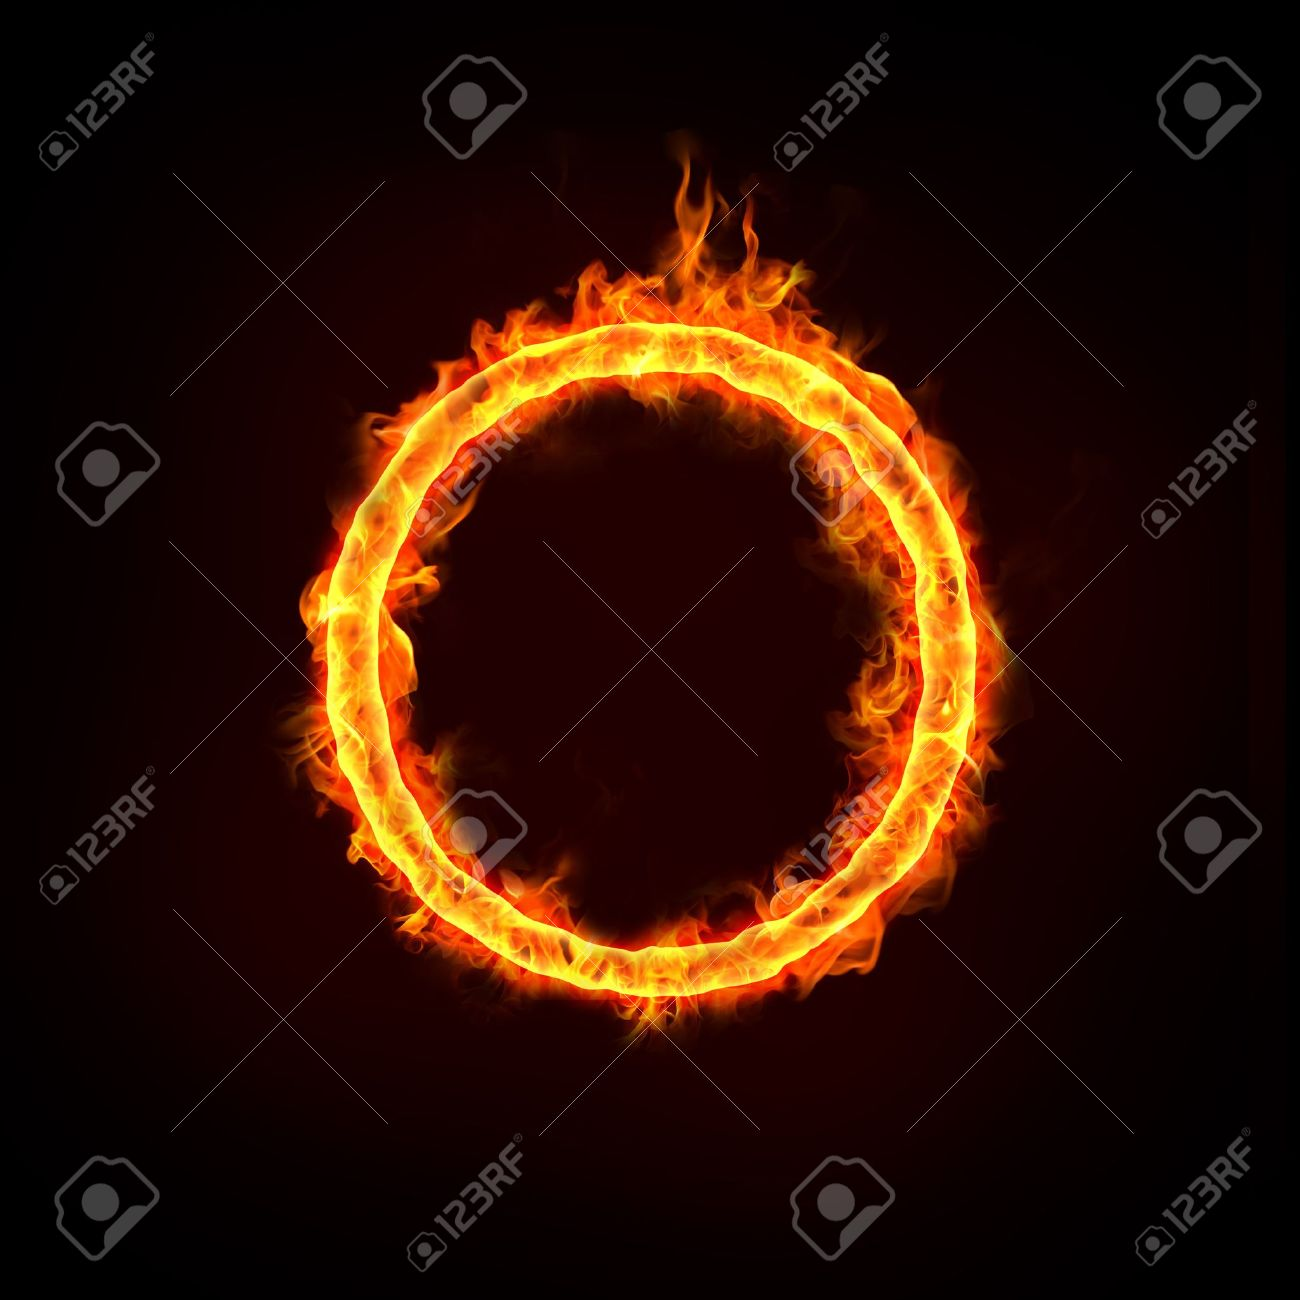 jumping over the fire ring, for business concepts. Stock Photo - 11821112